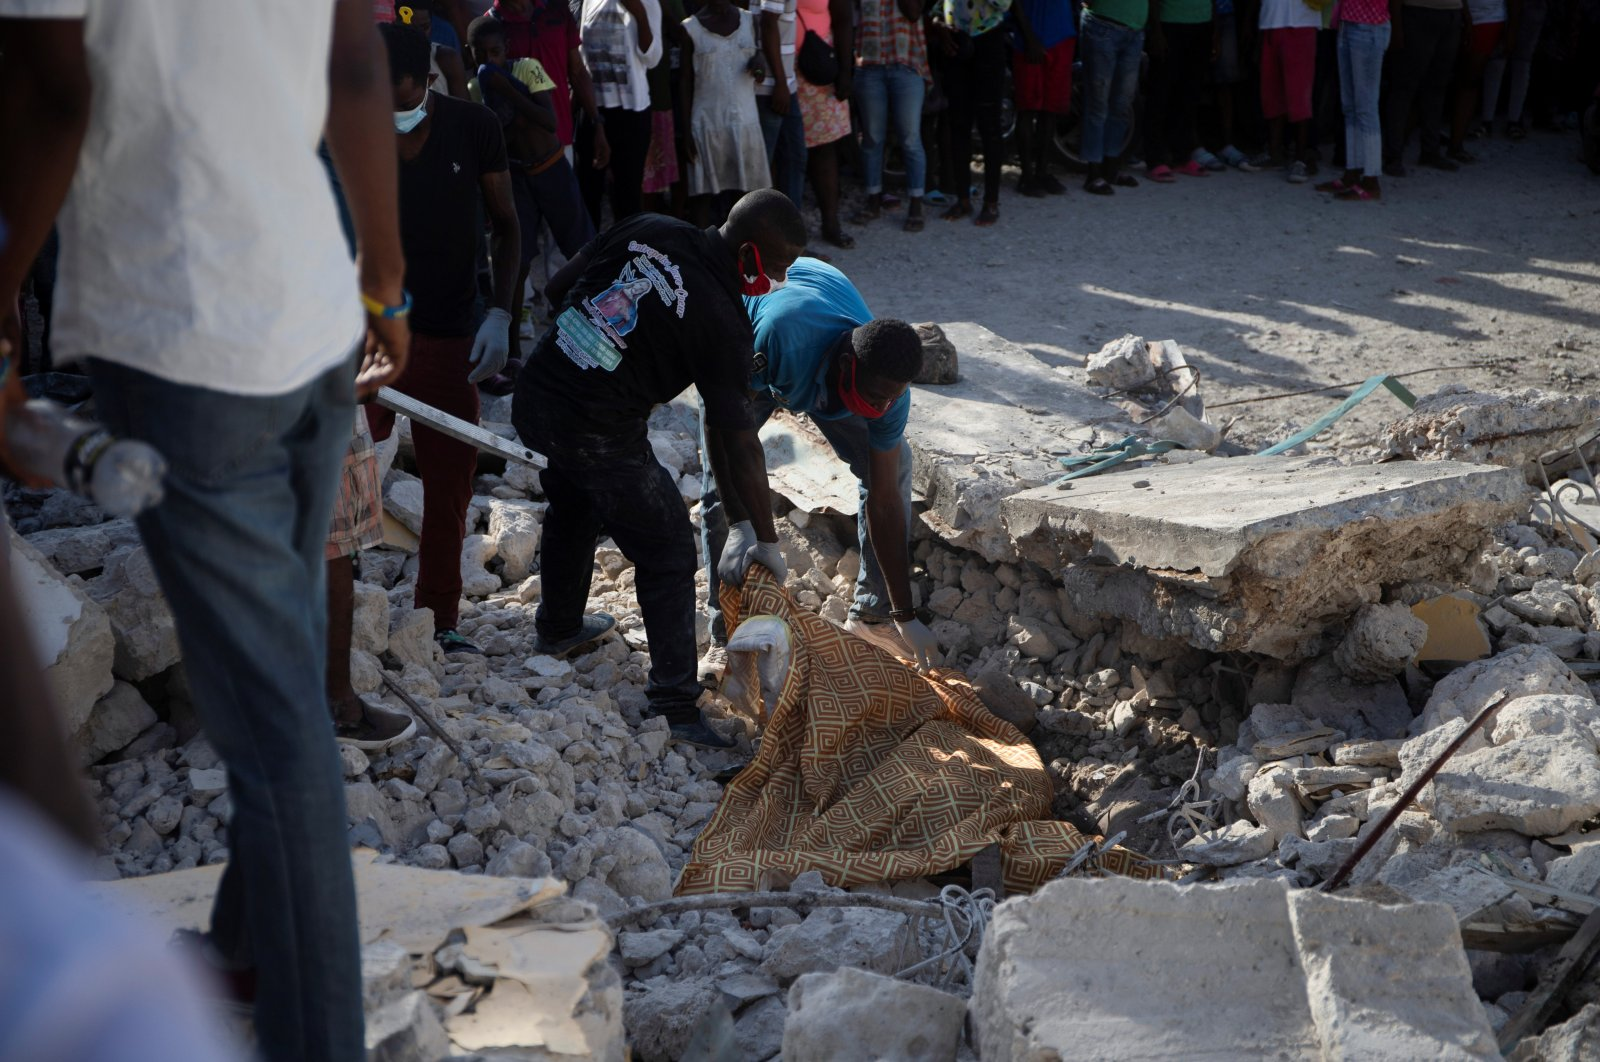 People cover the body of a person lying on the debris with a sheet, after a 7.2 magnitude earthquake, in Les Cayes, Haiti, Aug. 15, 2021. (Reuters Photo)